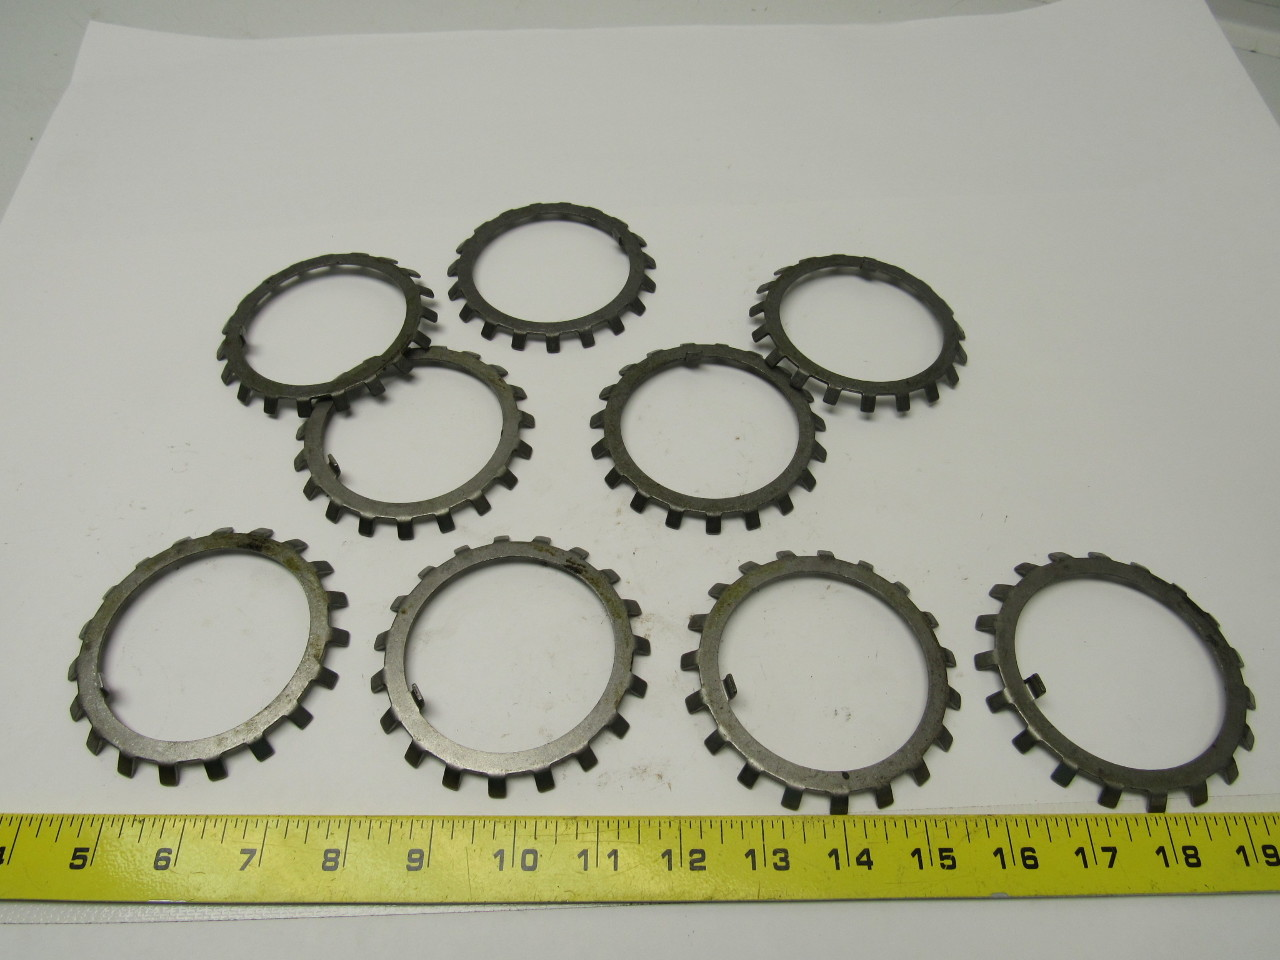 "Whittet Higgins W-14 - Bearing retaining nut lock washer 2.800"" I.D. Lot of 9"